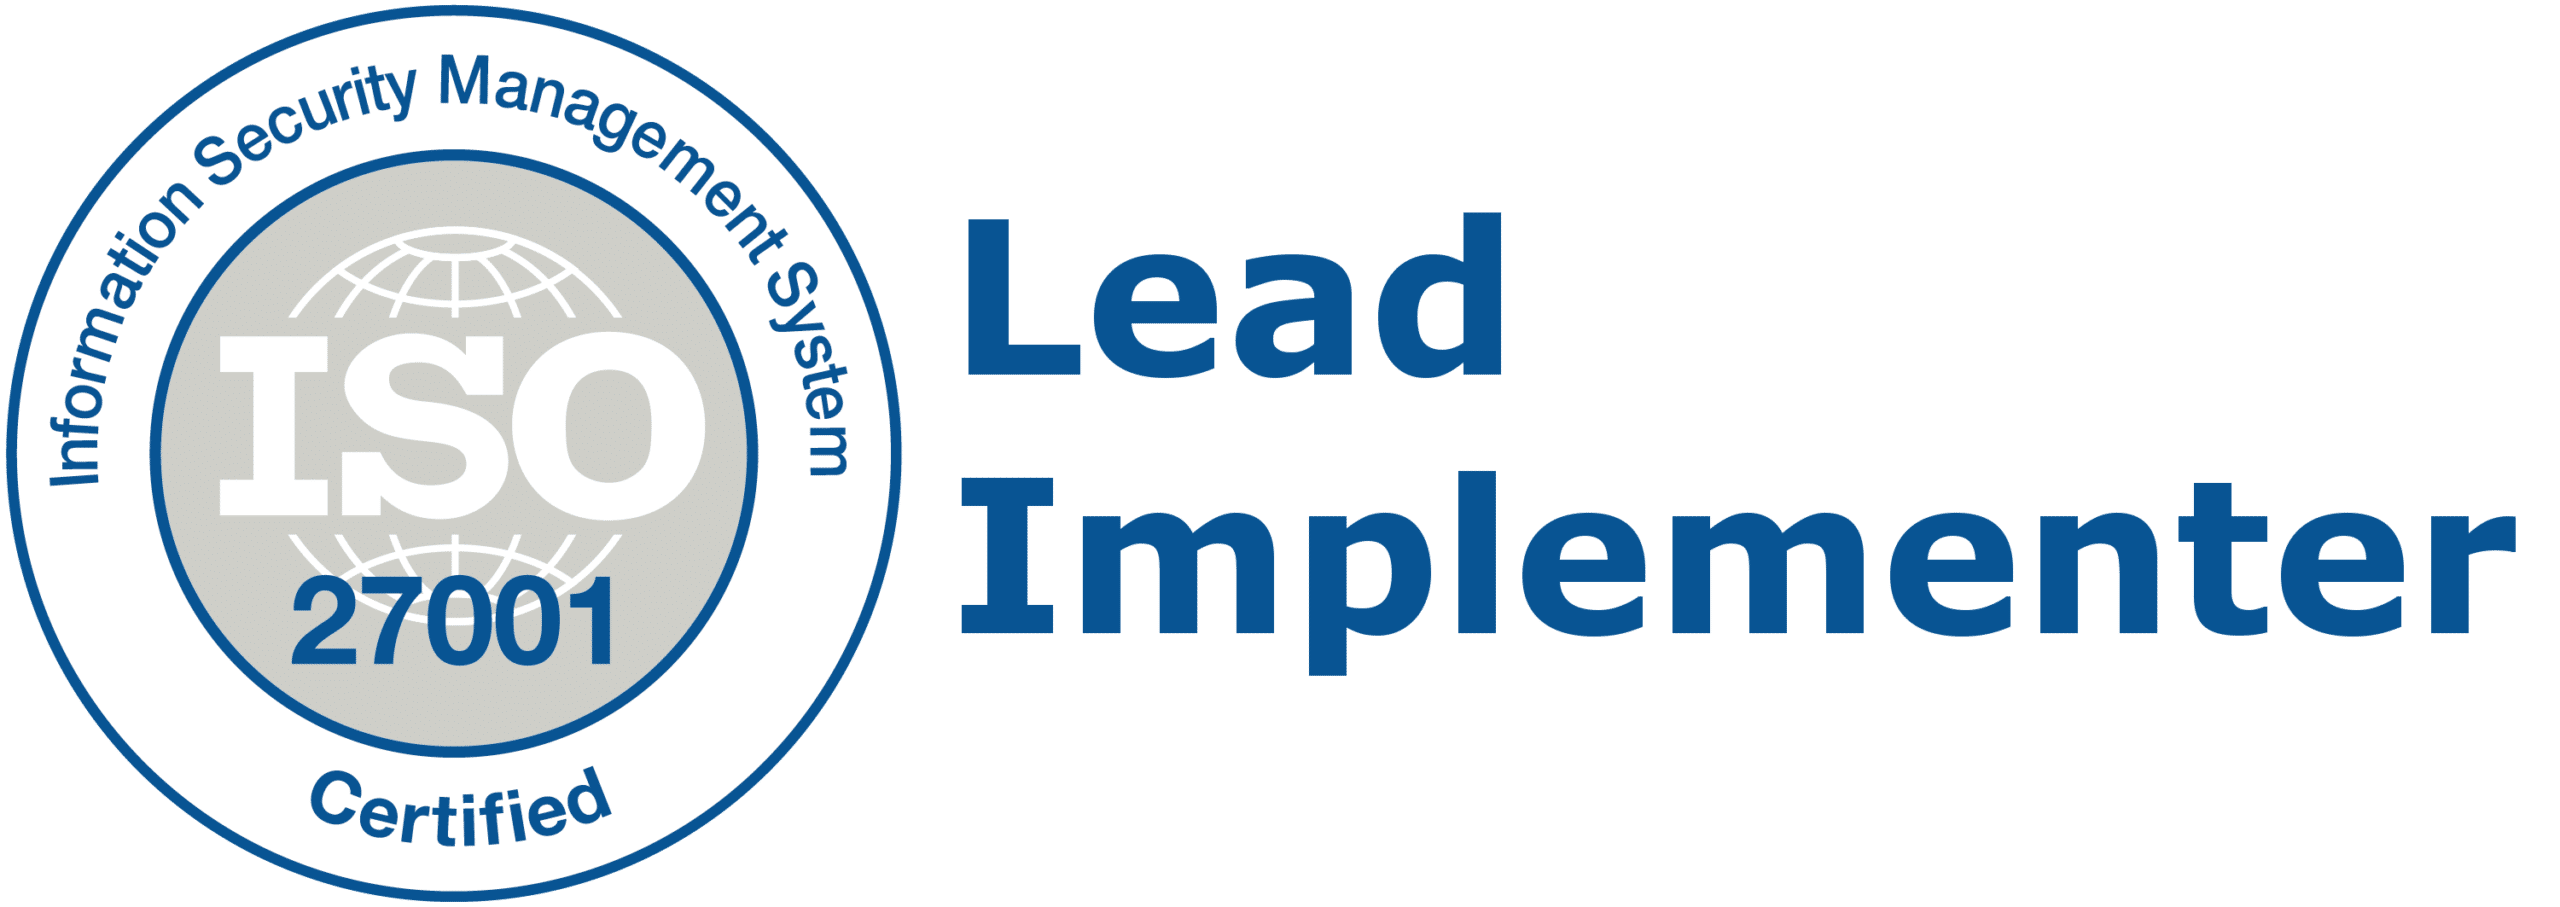 accompagnement implémentation iso 27001